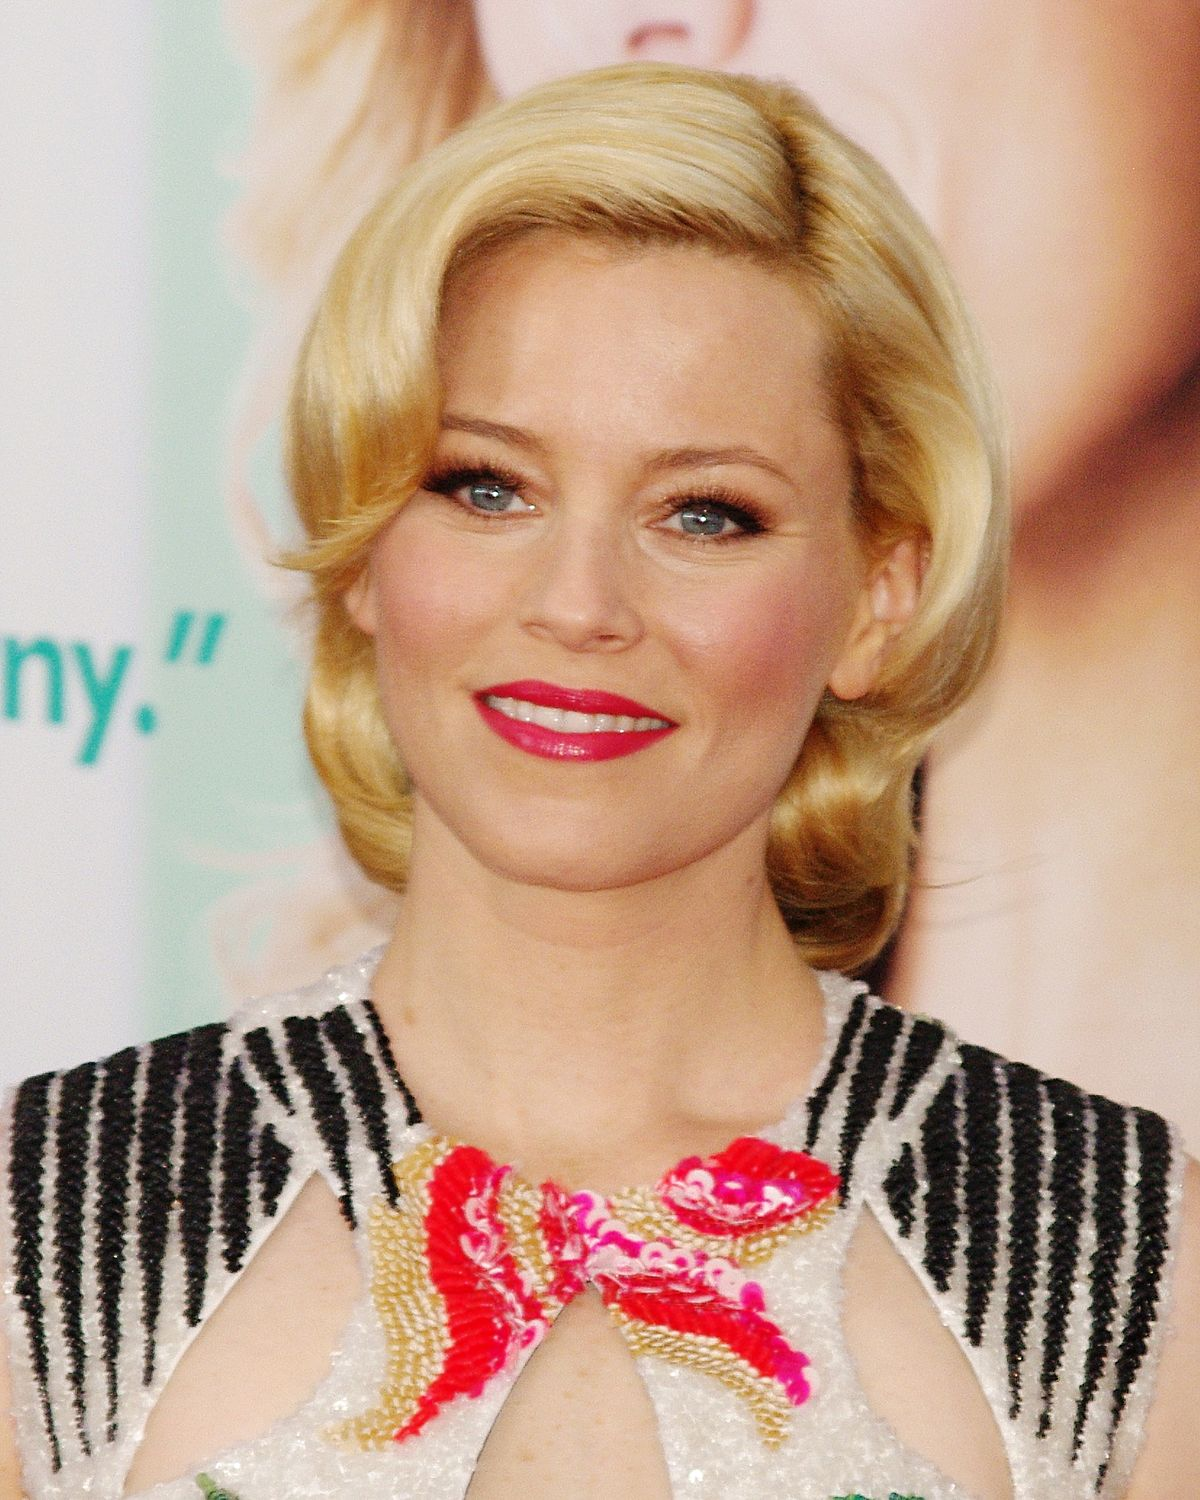 Elizabeth Banks  Wikipedia. Emigrant Savings Bank New York. Bajaj Travels Chandigarh Ems Billing Companies. Sell Old Jewelry For Cash Arizona Senior Care. Where To Buy Stocks And Bonds. Technical Schools In Minneapolis. Buying And Selling Domains Pta Schools In Ga. Design Schools In Los Angeles. Feeding Schedule For Infants